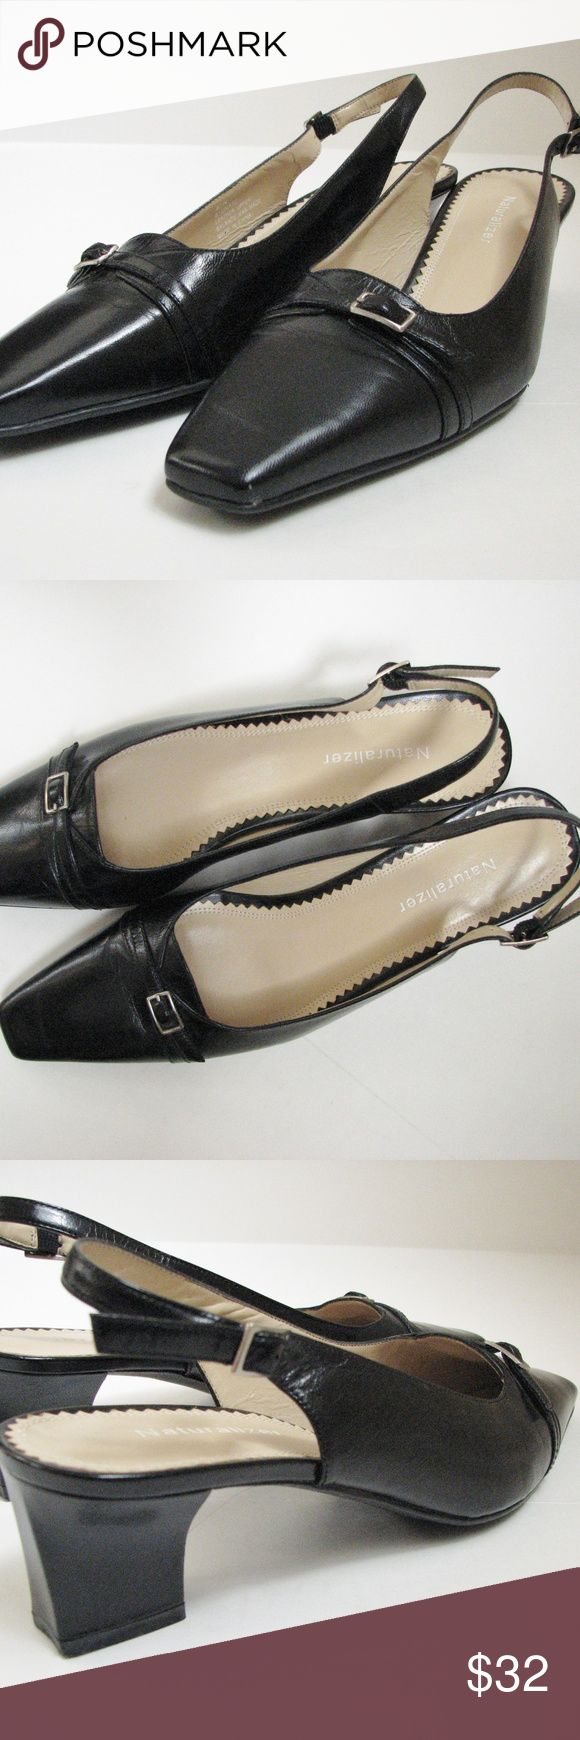 """Naturalizer Slingback Black Leather Shoes 8.5N Naturalizer Slingback Black Leather Women's Shoes Size 8 1/2N Leather upper, balance man made 1 7/8"""" heel Excellent used, like new condition Naturalizer Shoes"""